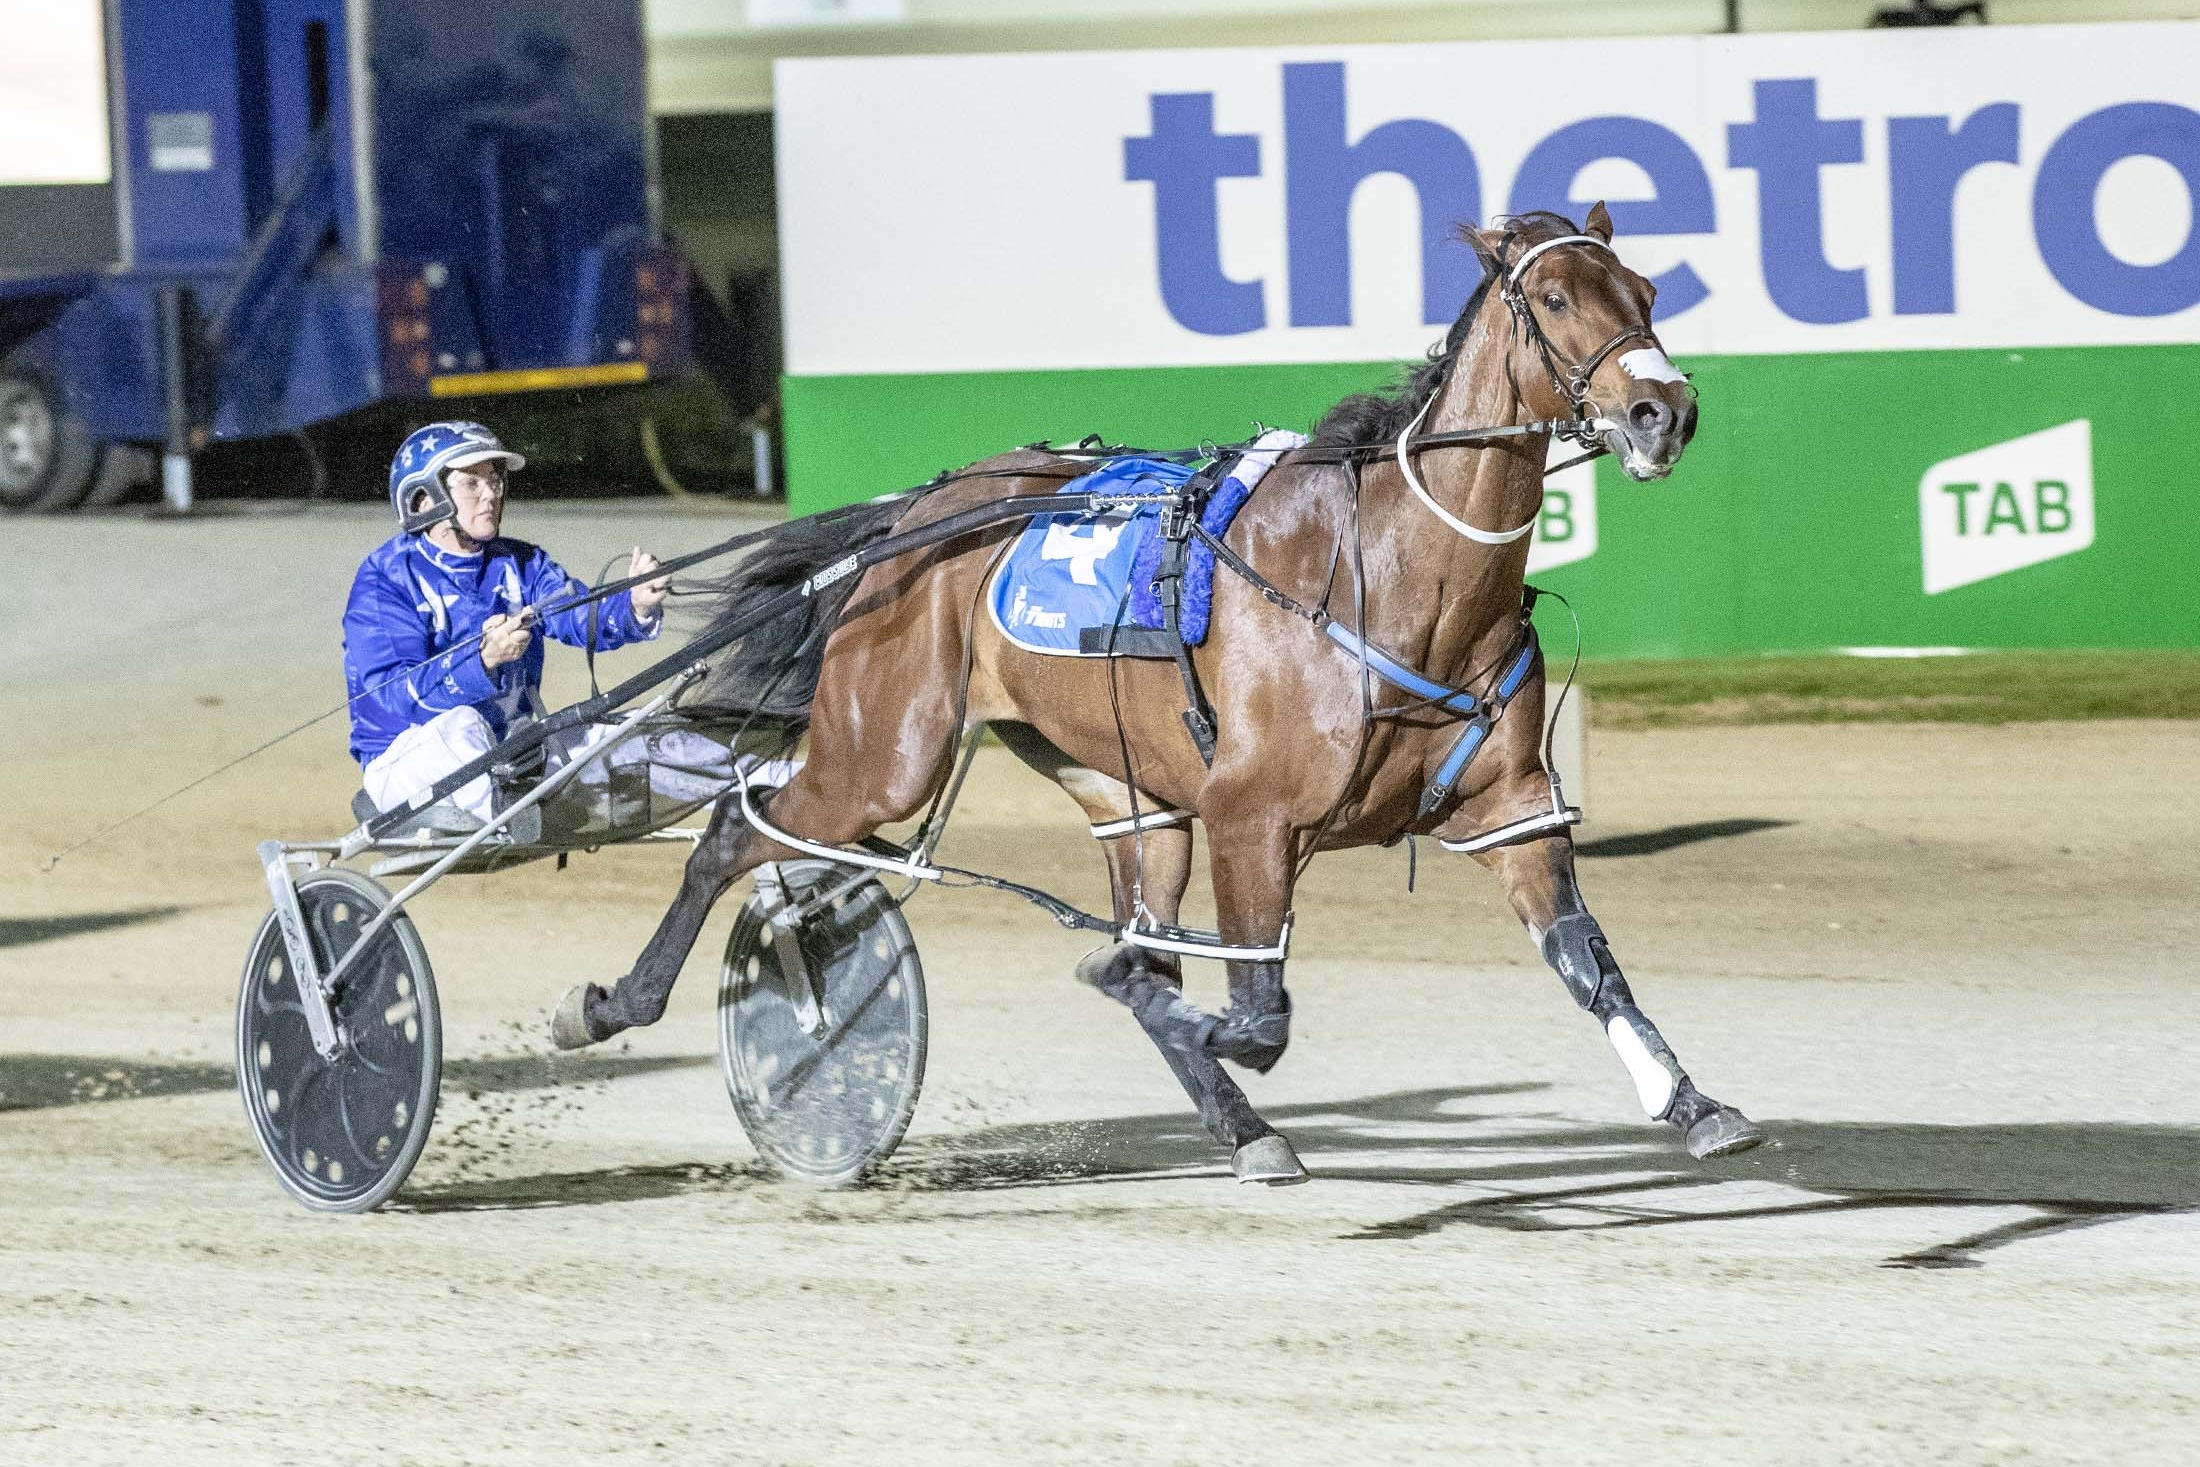 Natalie Rasmussen guides Cruz Bromac home in the first round of the TAB ID18 pacing heats at Tabcorp Park Melton.